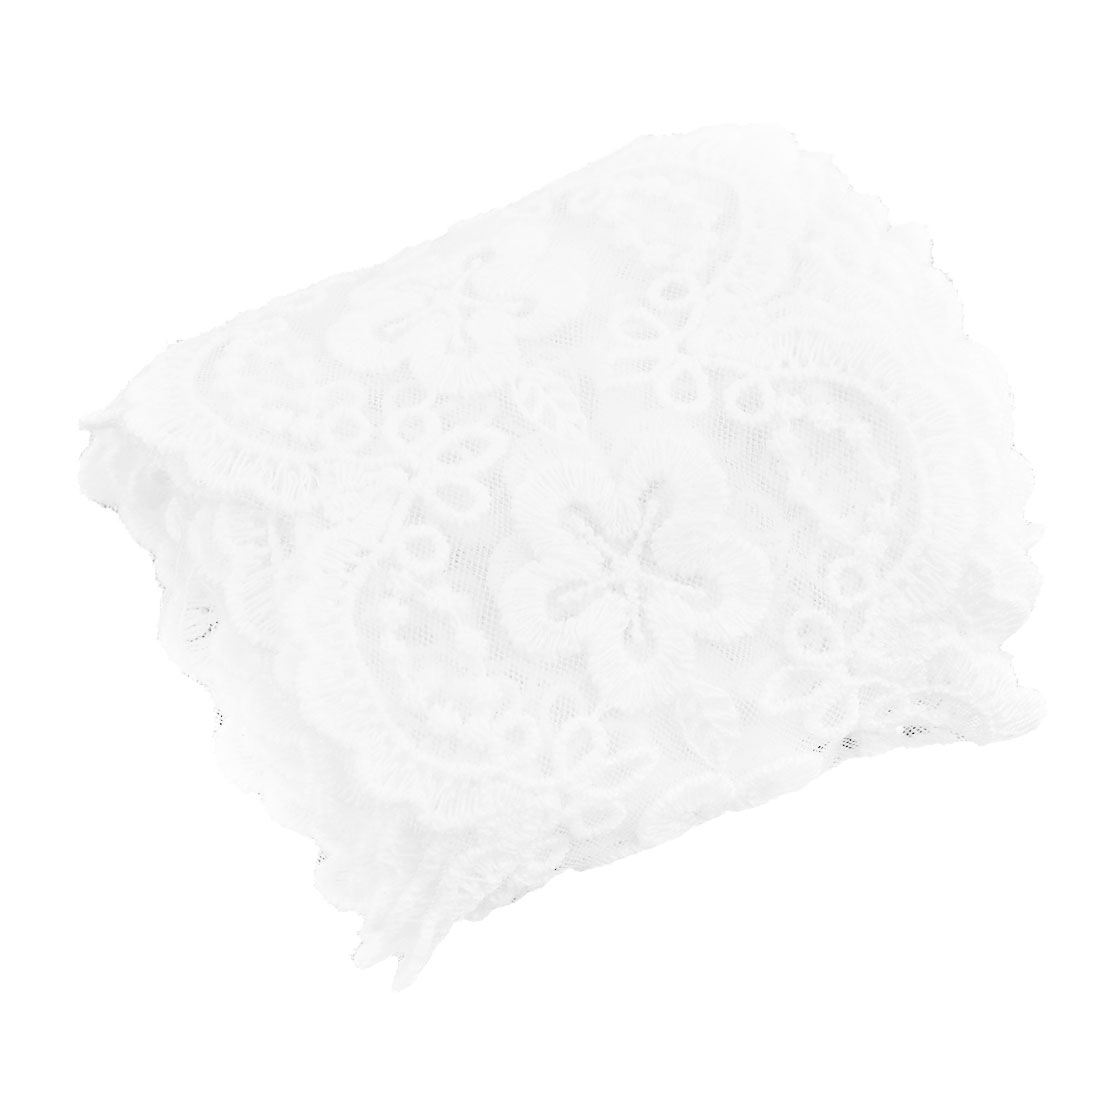 Polyester Fower Design Personalized Lace Trim Applique White 2.8 Inches Width